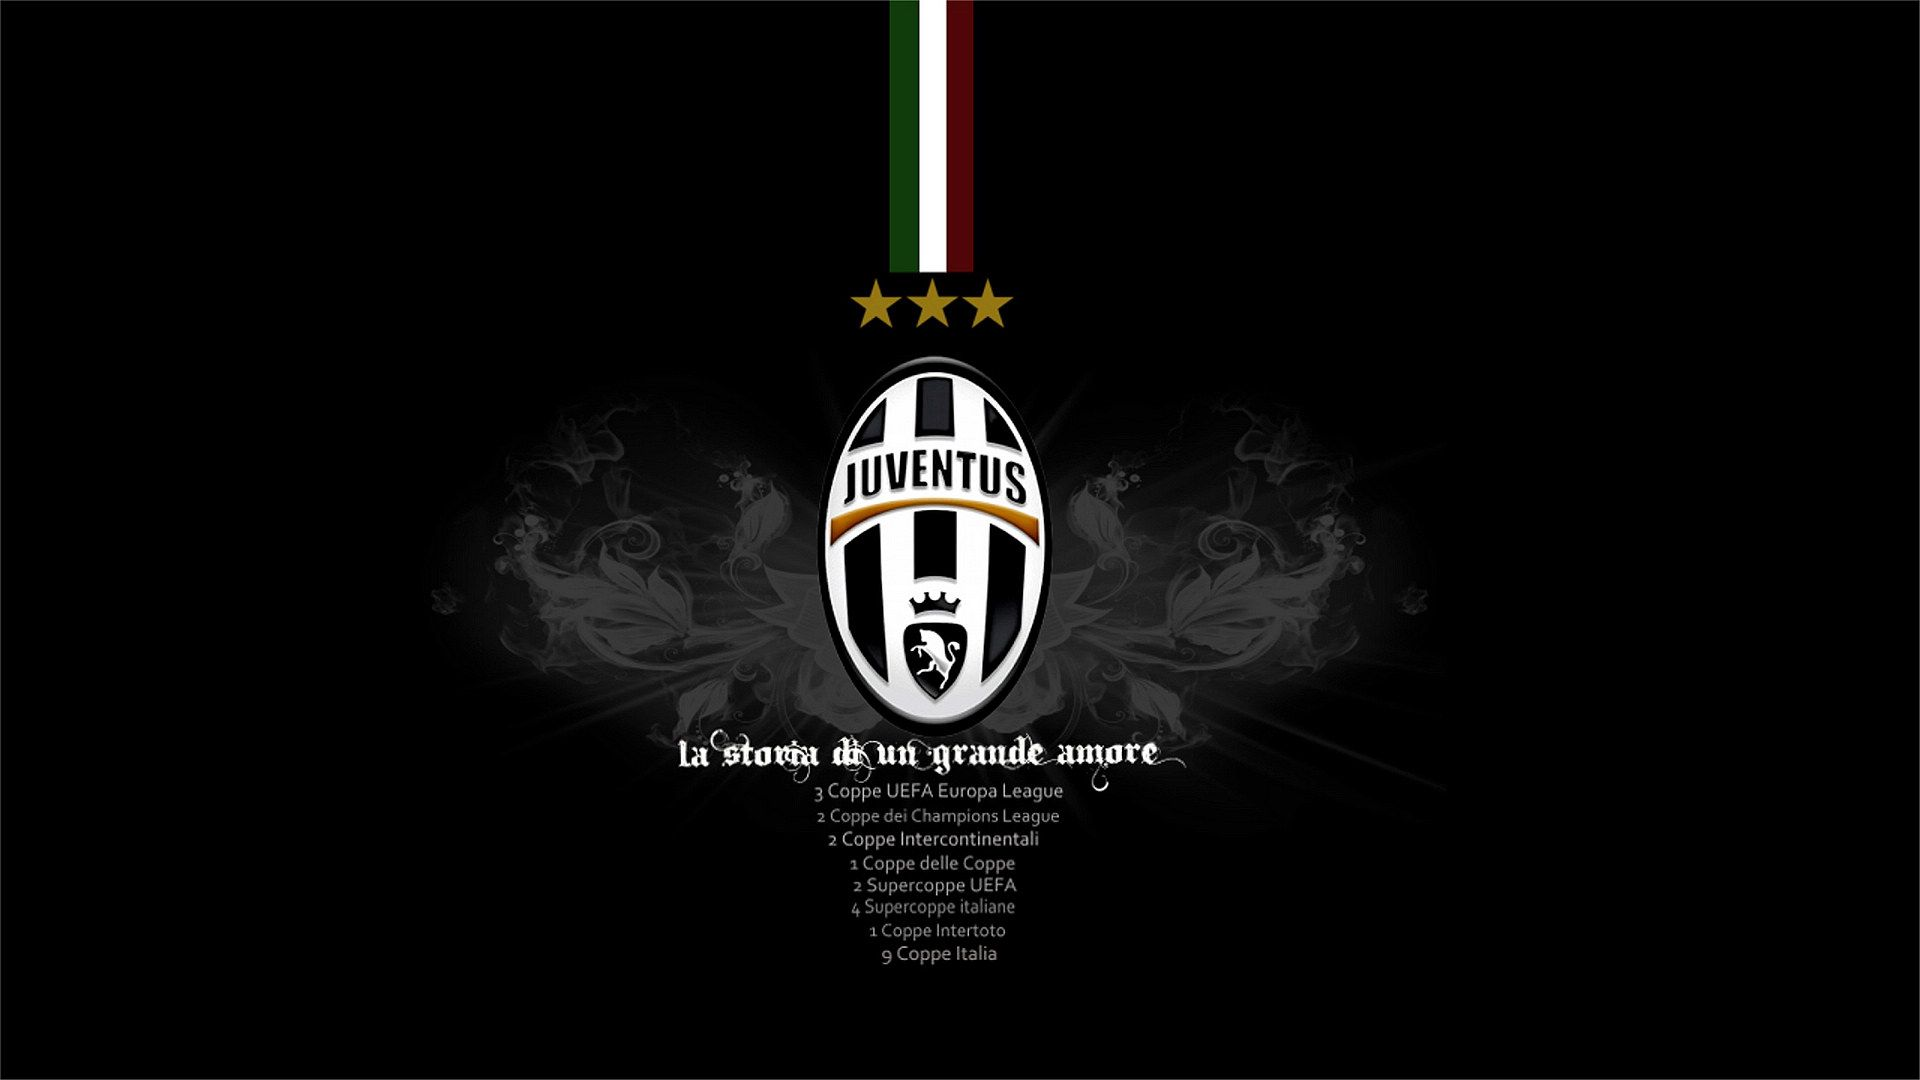 Juventus Wallpaper Hd 3 1920x1080